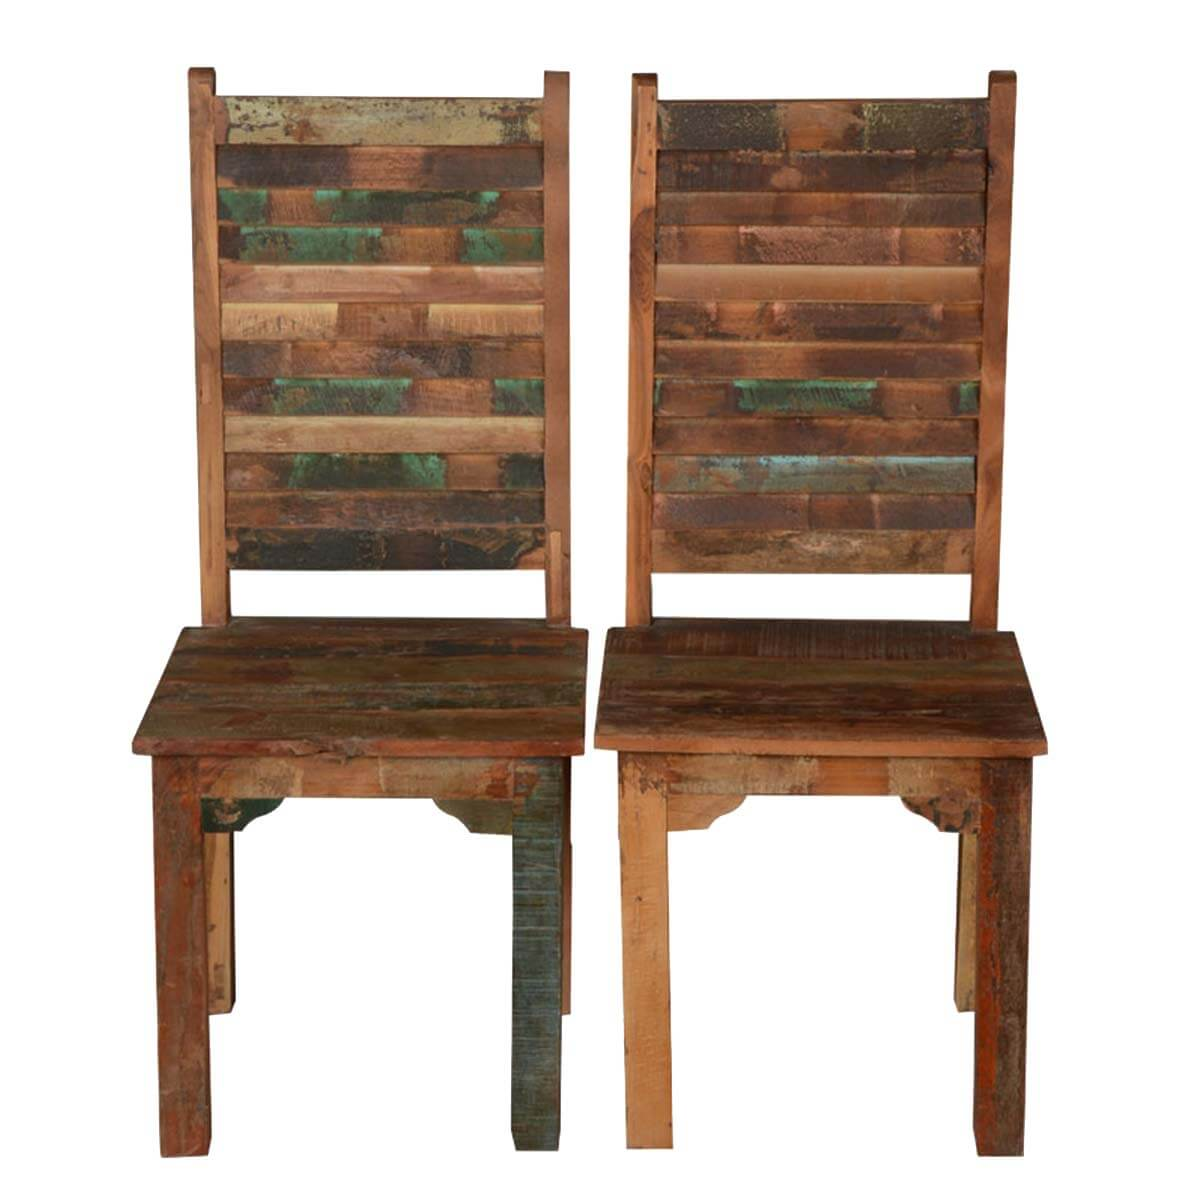 Rustic Distressed Reclaimed Wood Multi Color Dining Chairs